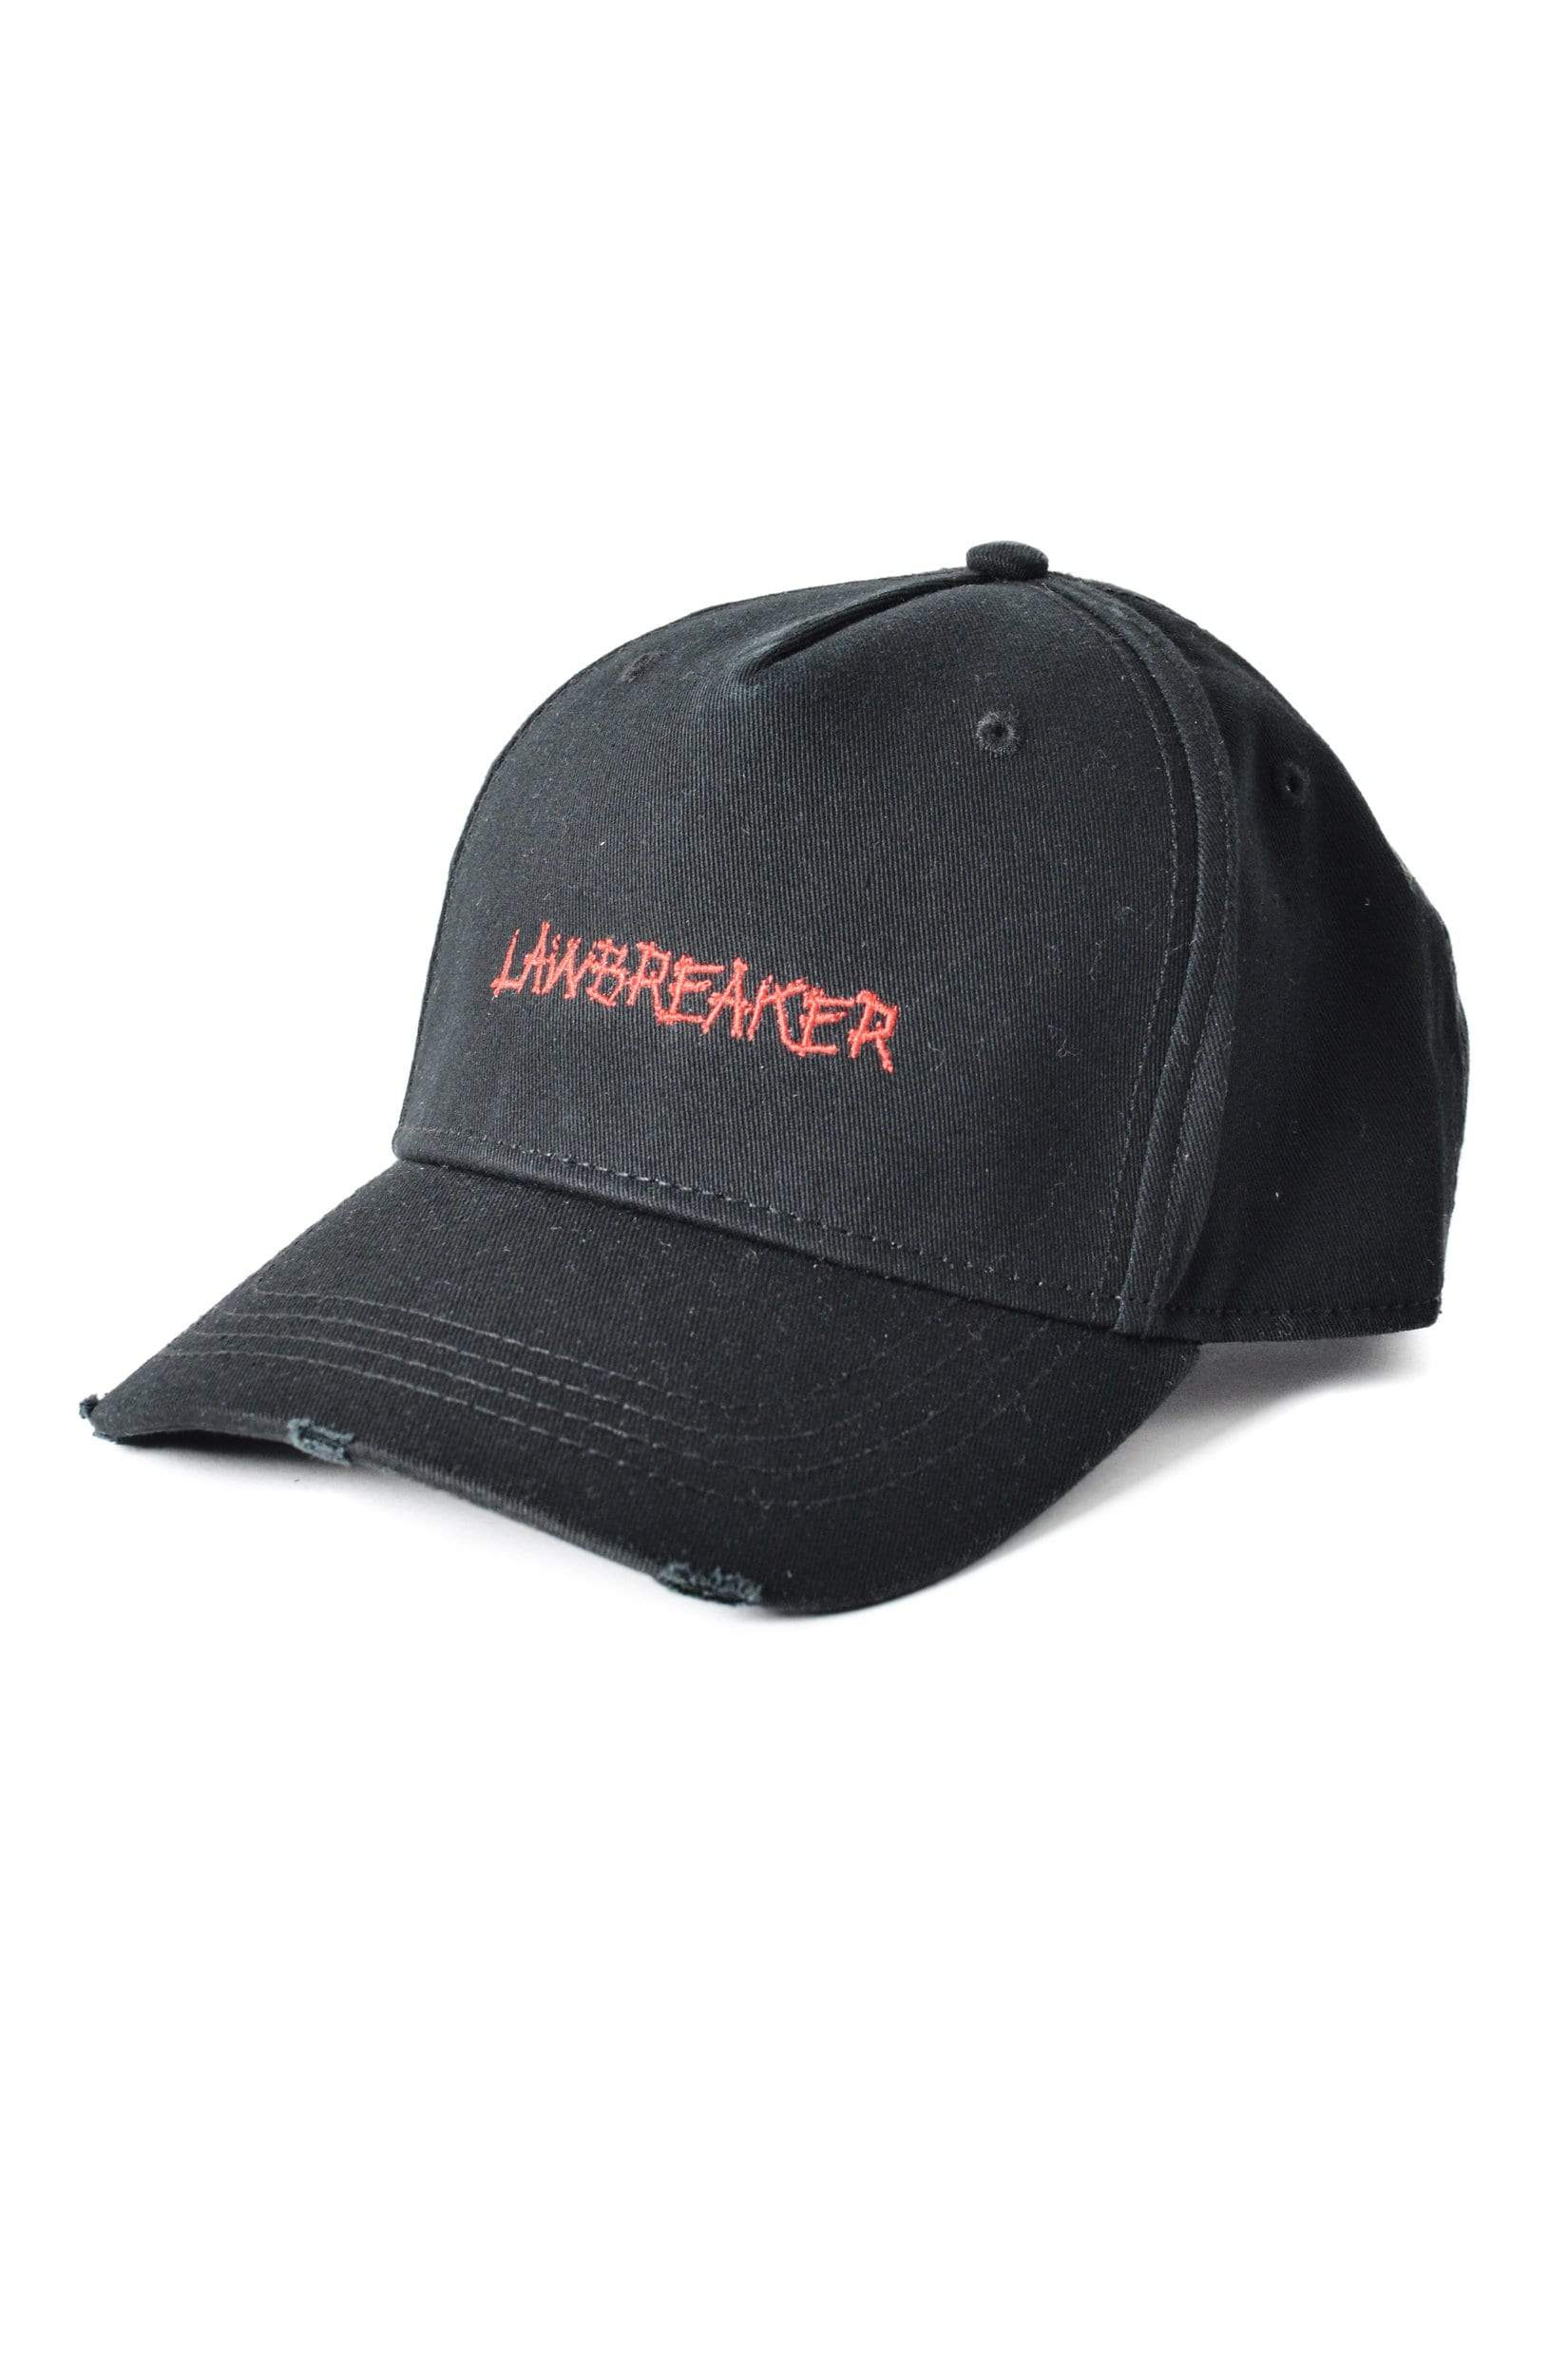 Lawbreaker Destroyed Cap Black